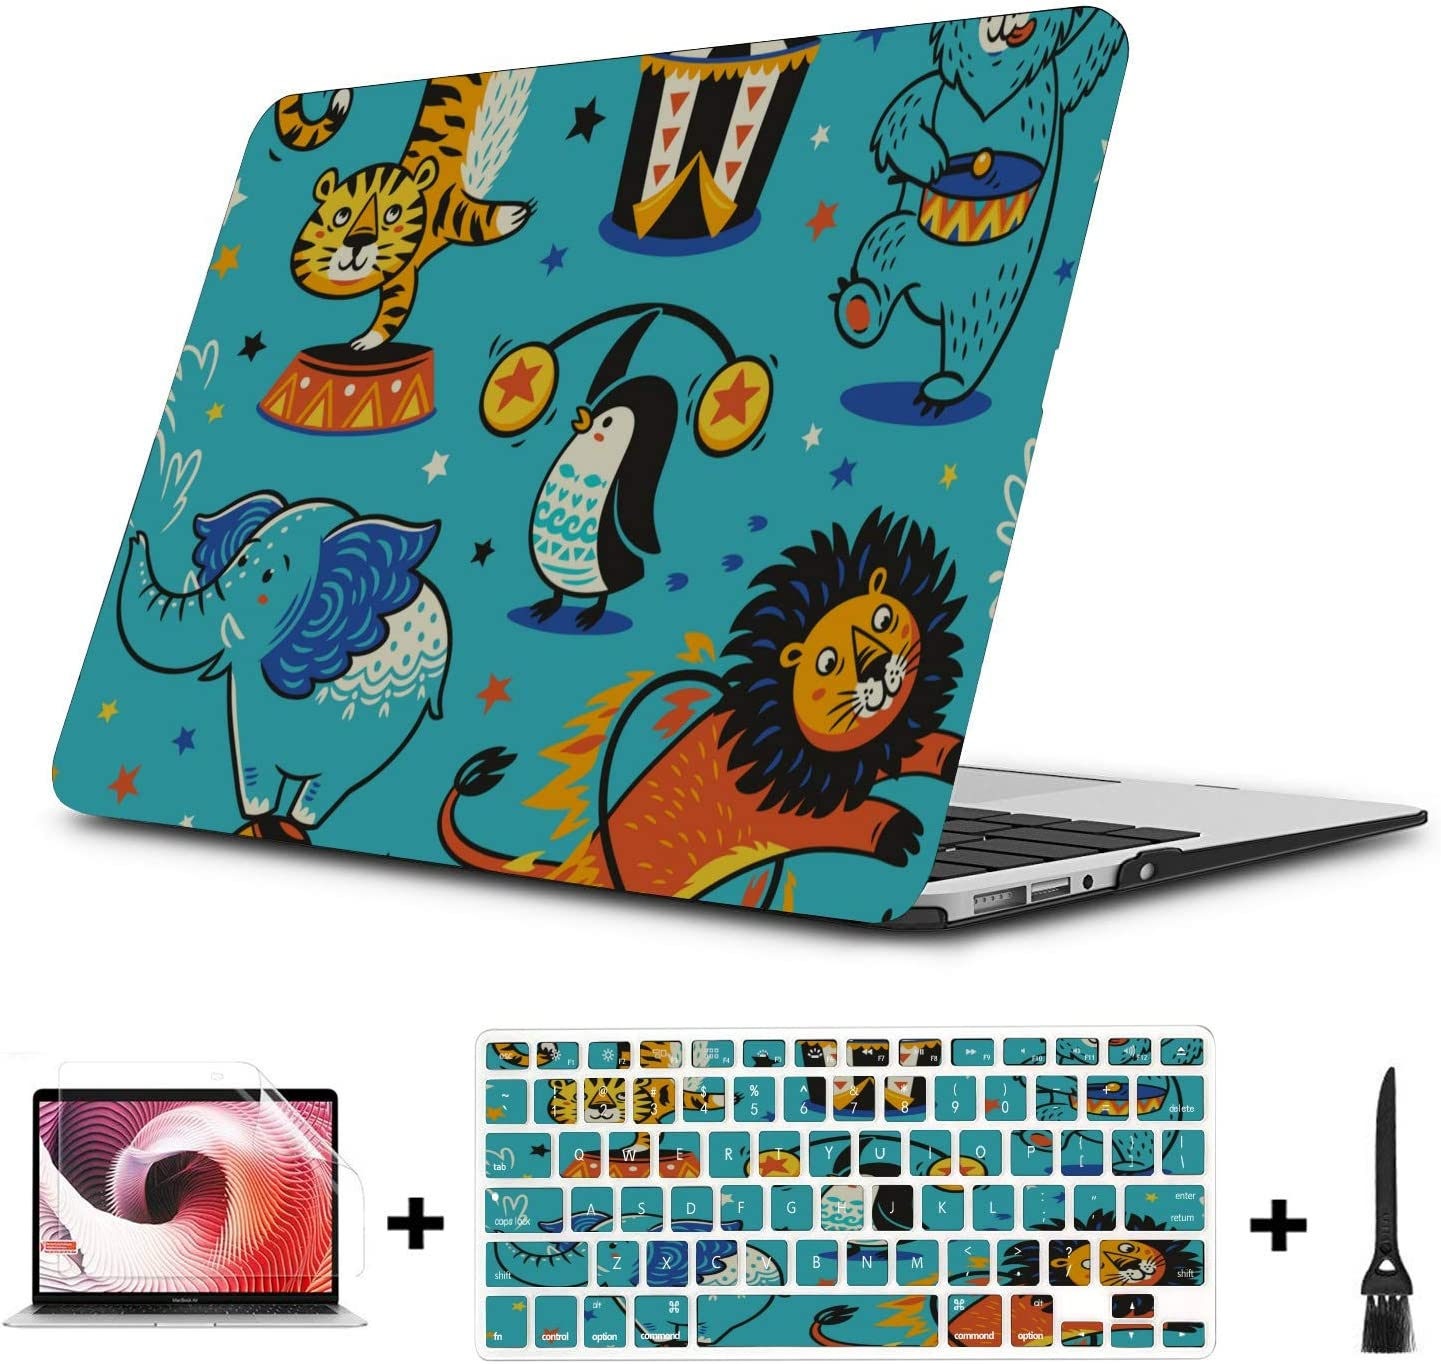 Mac Book Pro Cover Surprise Creative Happy Painting Plastic Hard Shell Compatible Mac Air 11 Pro 13 15 Macbookpro Case Protection for MacBook 2016-2019 Version